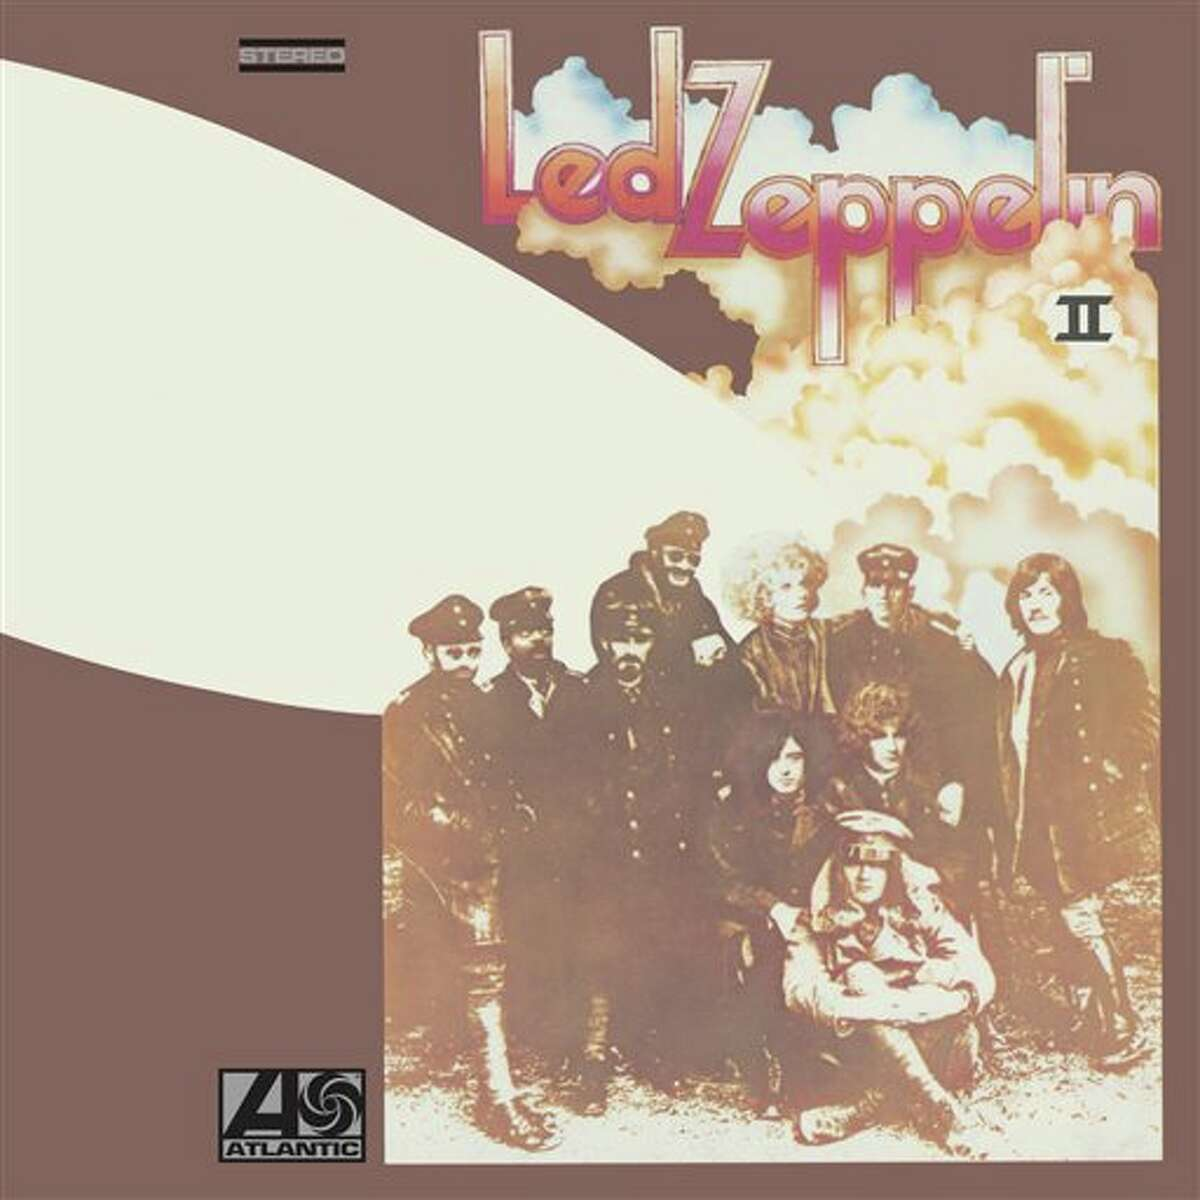 No. 48 Led Zeppelin: Led Zeppelin II